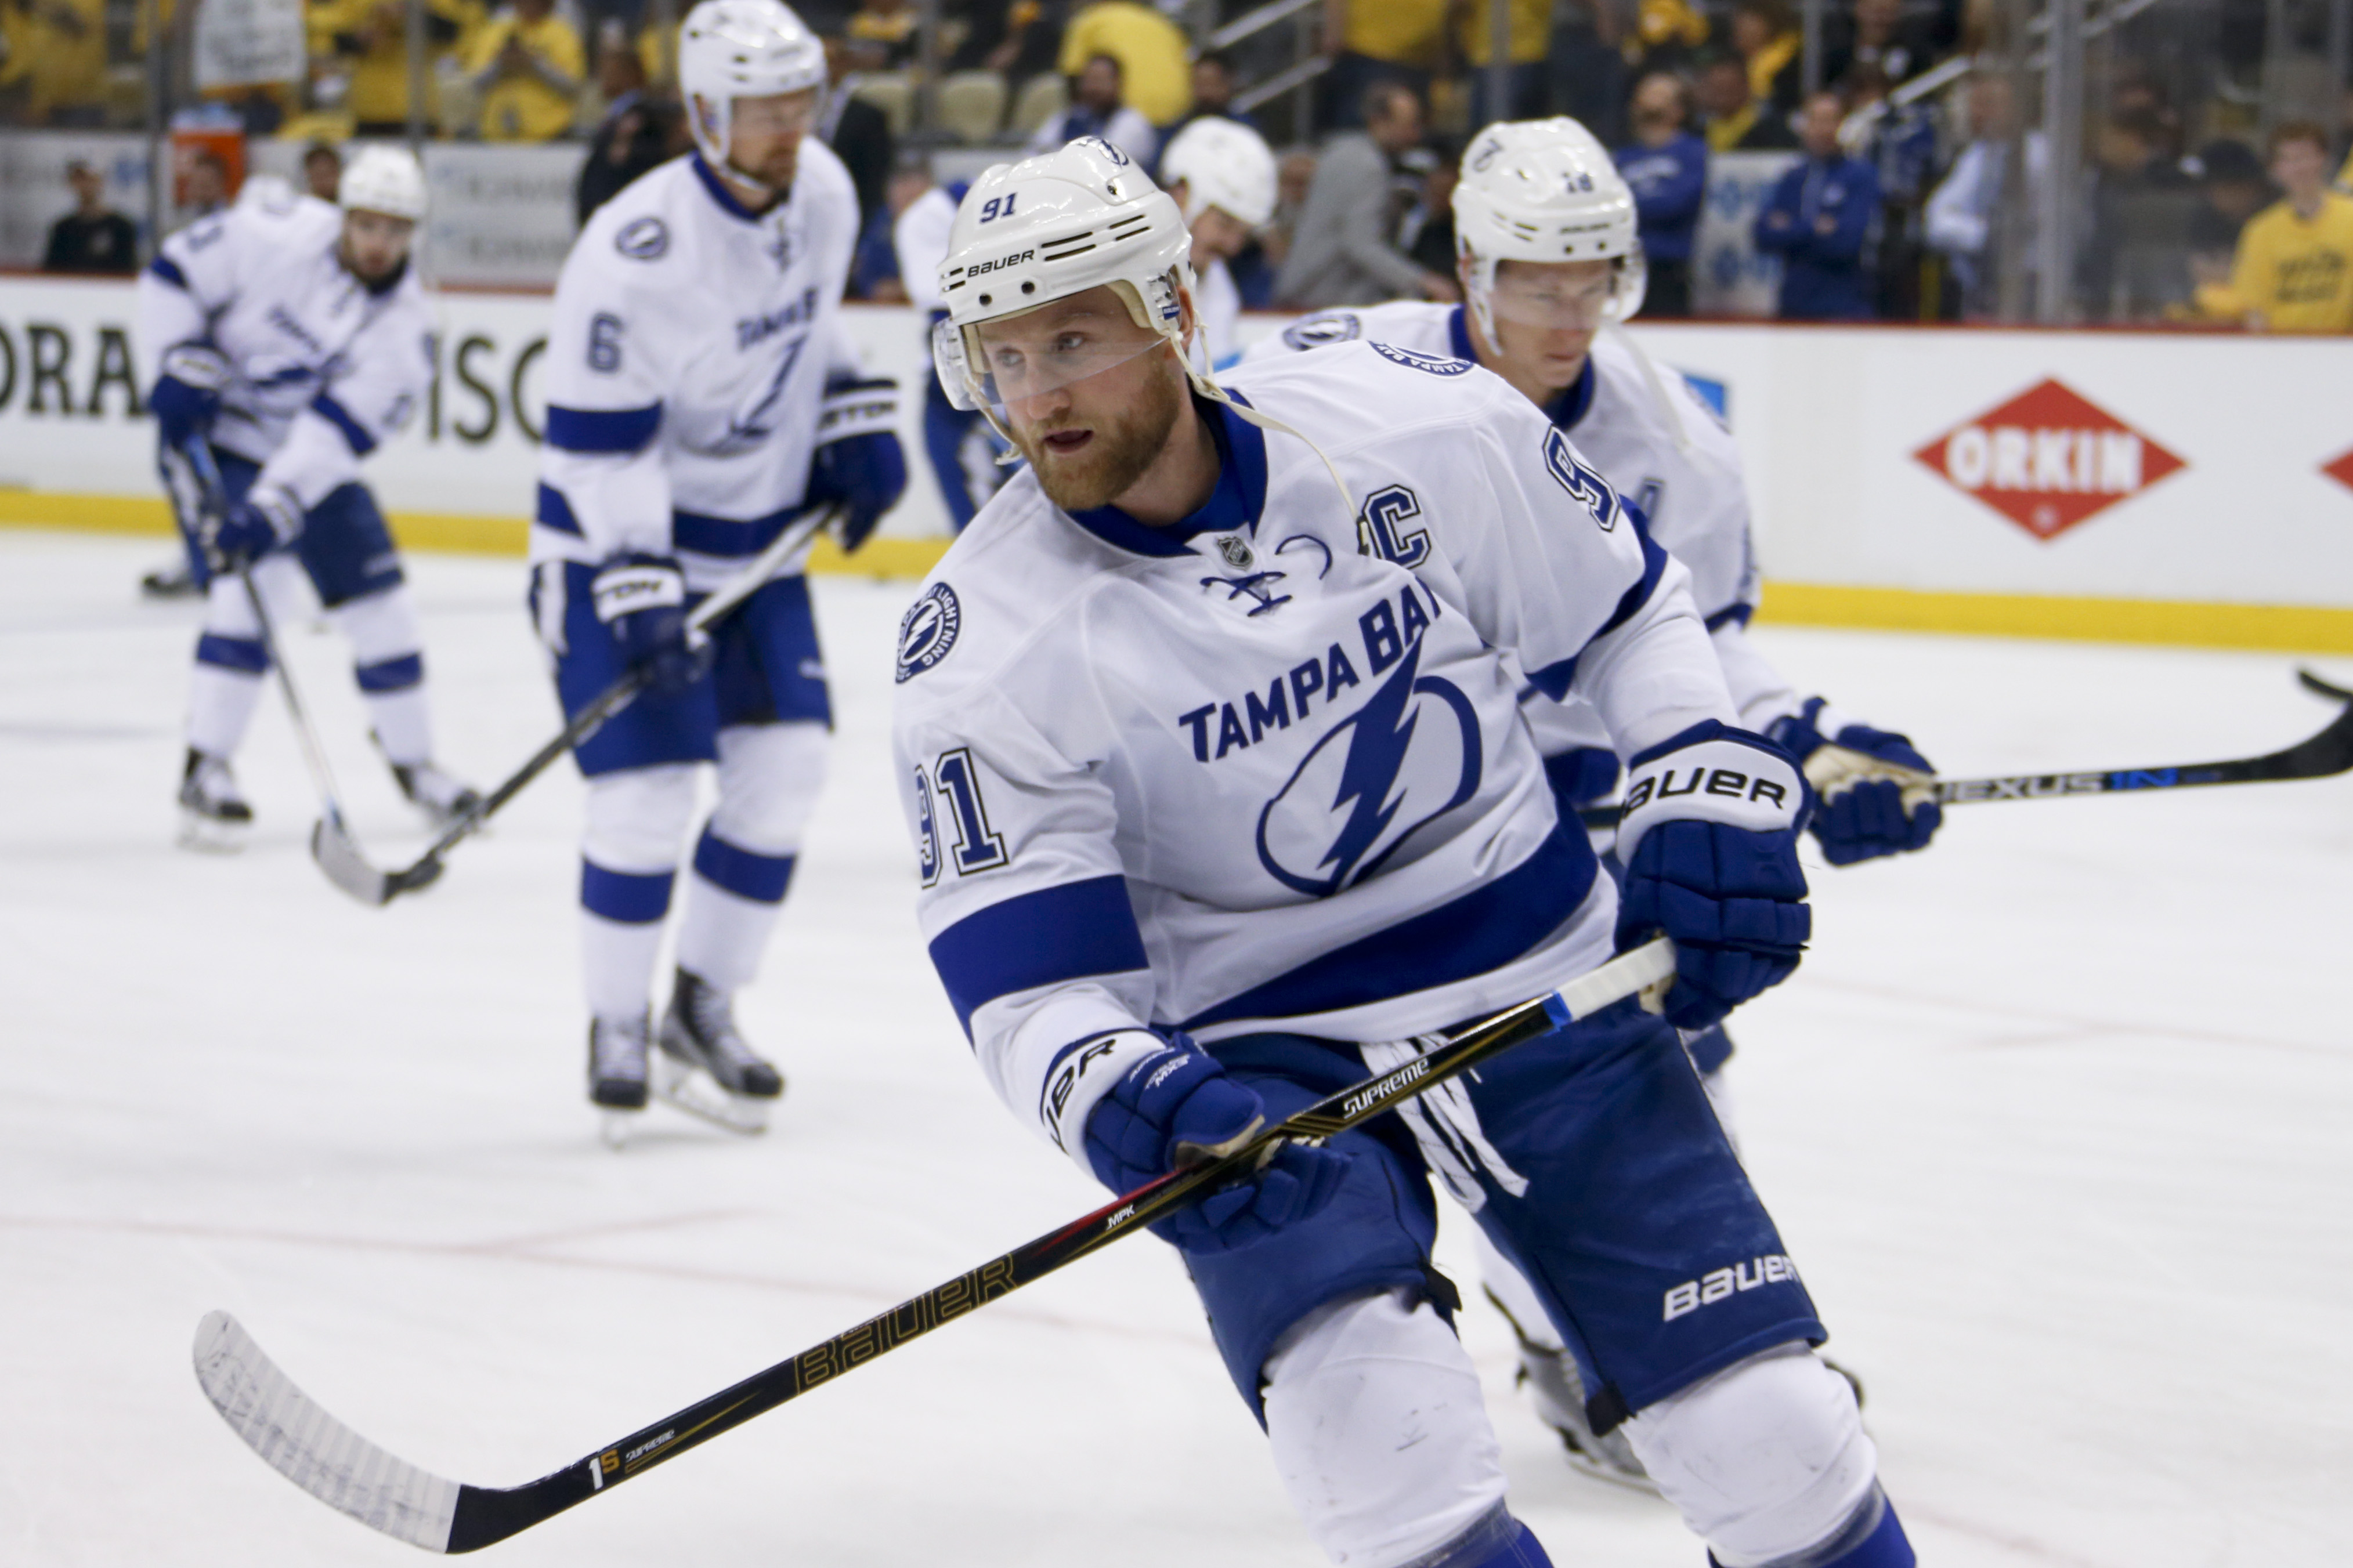 Tampa Bay Lightning's Steven Stamkos skates during a warmup skate before Game 7 of the NHL hockey Stanley Cup Eastern Conference Finals, Thursday, May 26, 2016, in Pittsburgh. Stamkos hasn't played in any playoff games this season. (AP Photo/Gene J. Puska